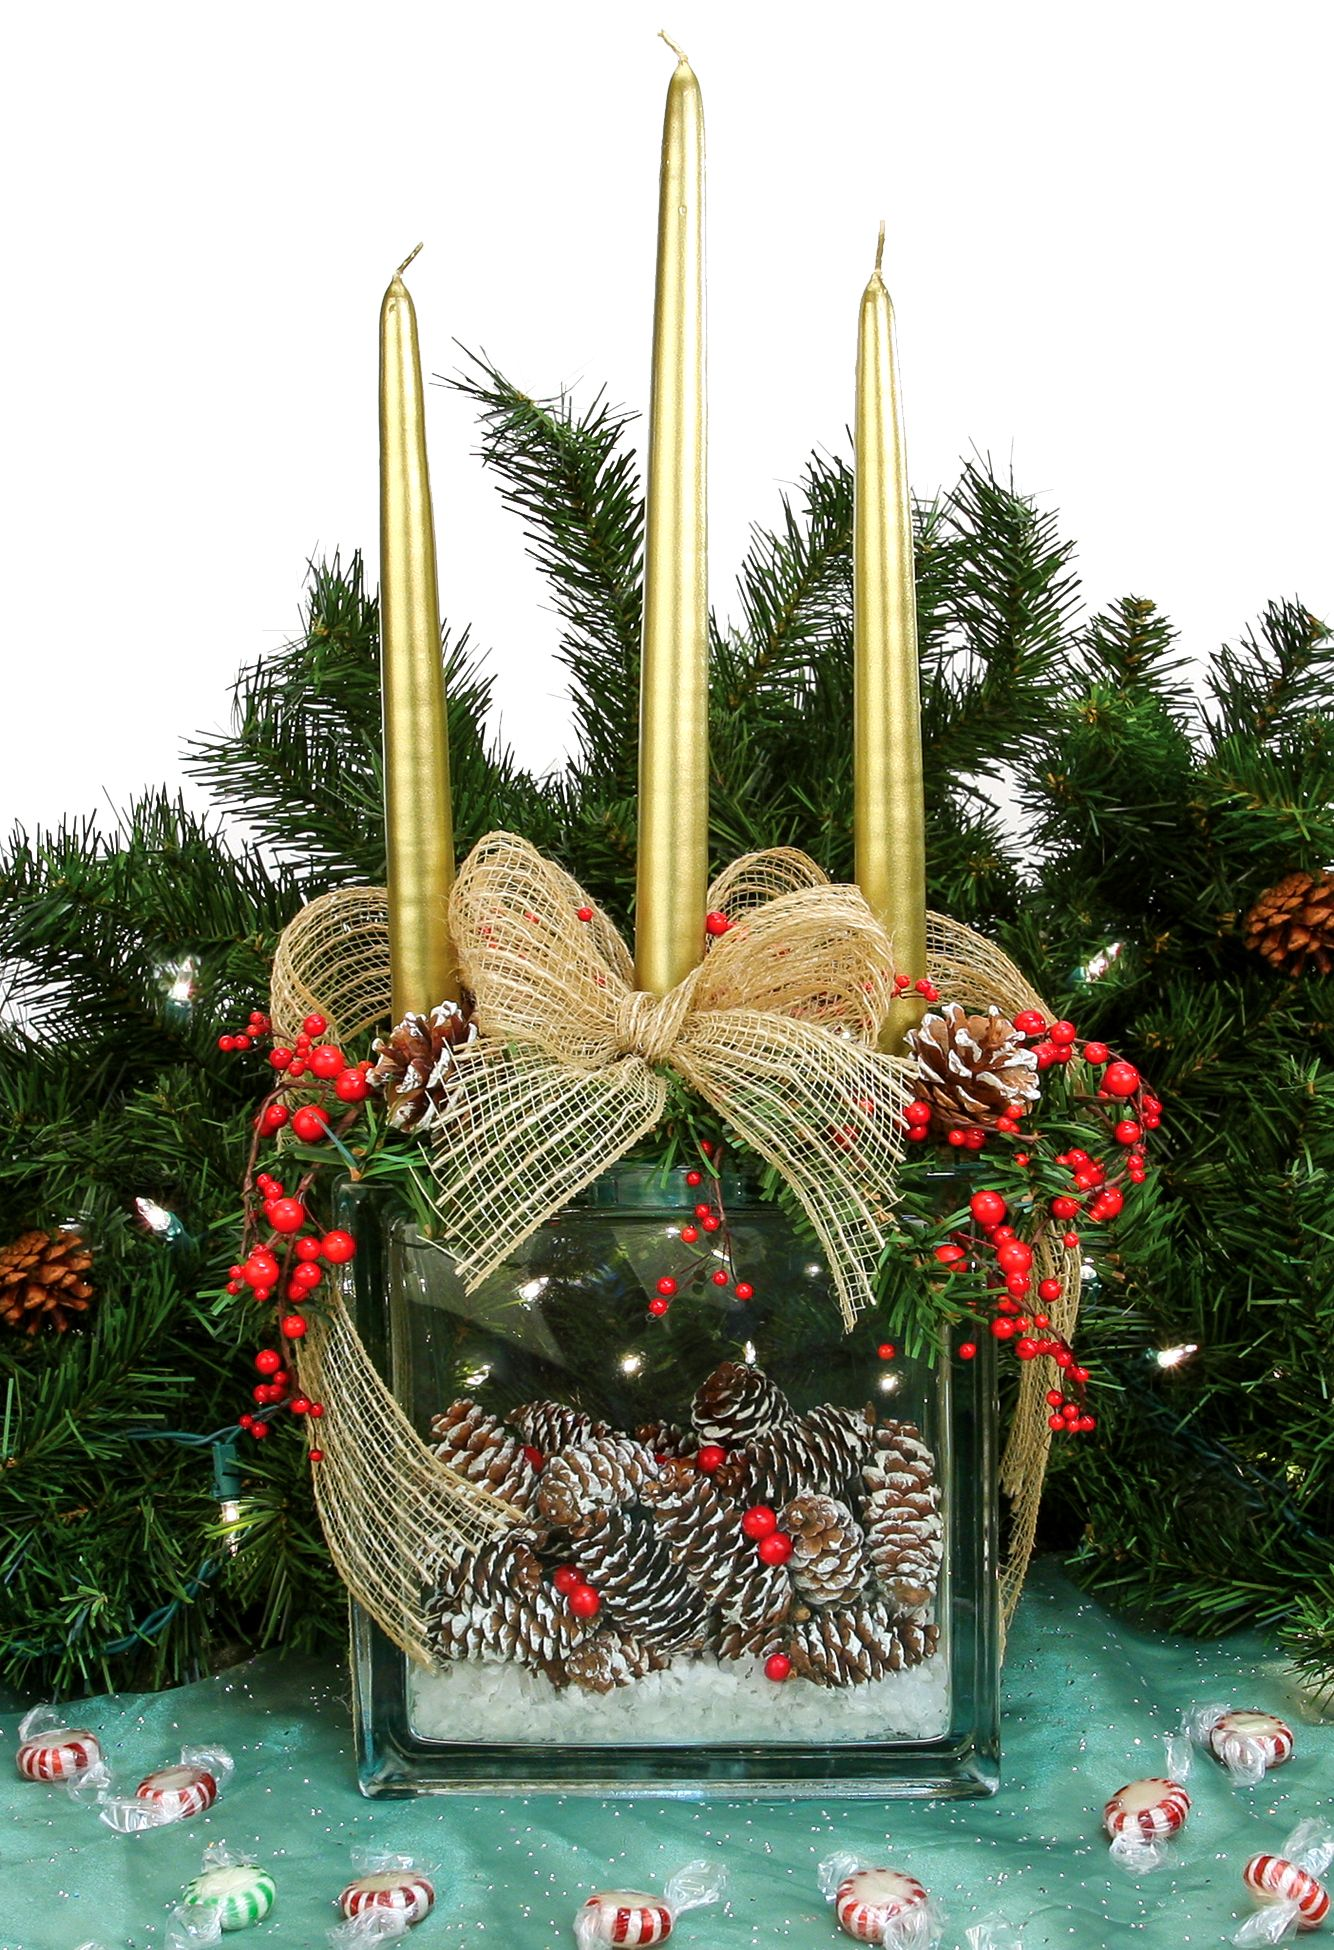 Nicole™ crafts holiday pine cone glass block centerpiece